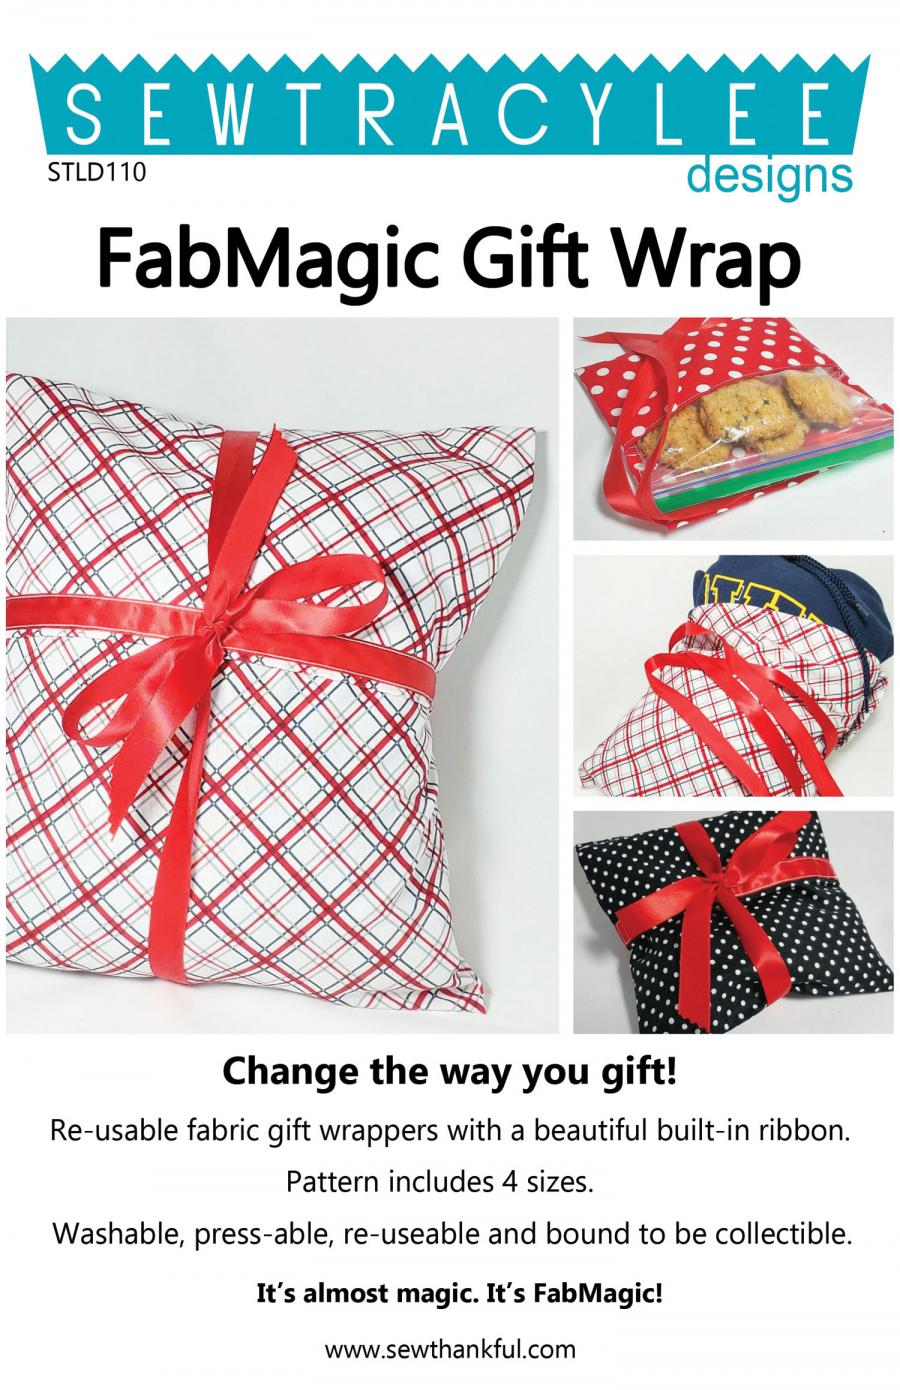 Download - FabMagic Gift Wrap sewing pattern from Sew TracyLee Designs